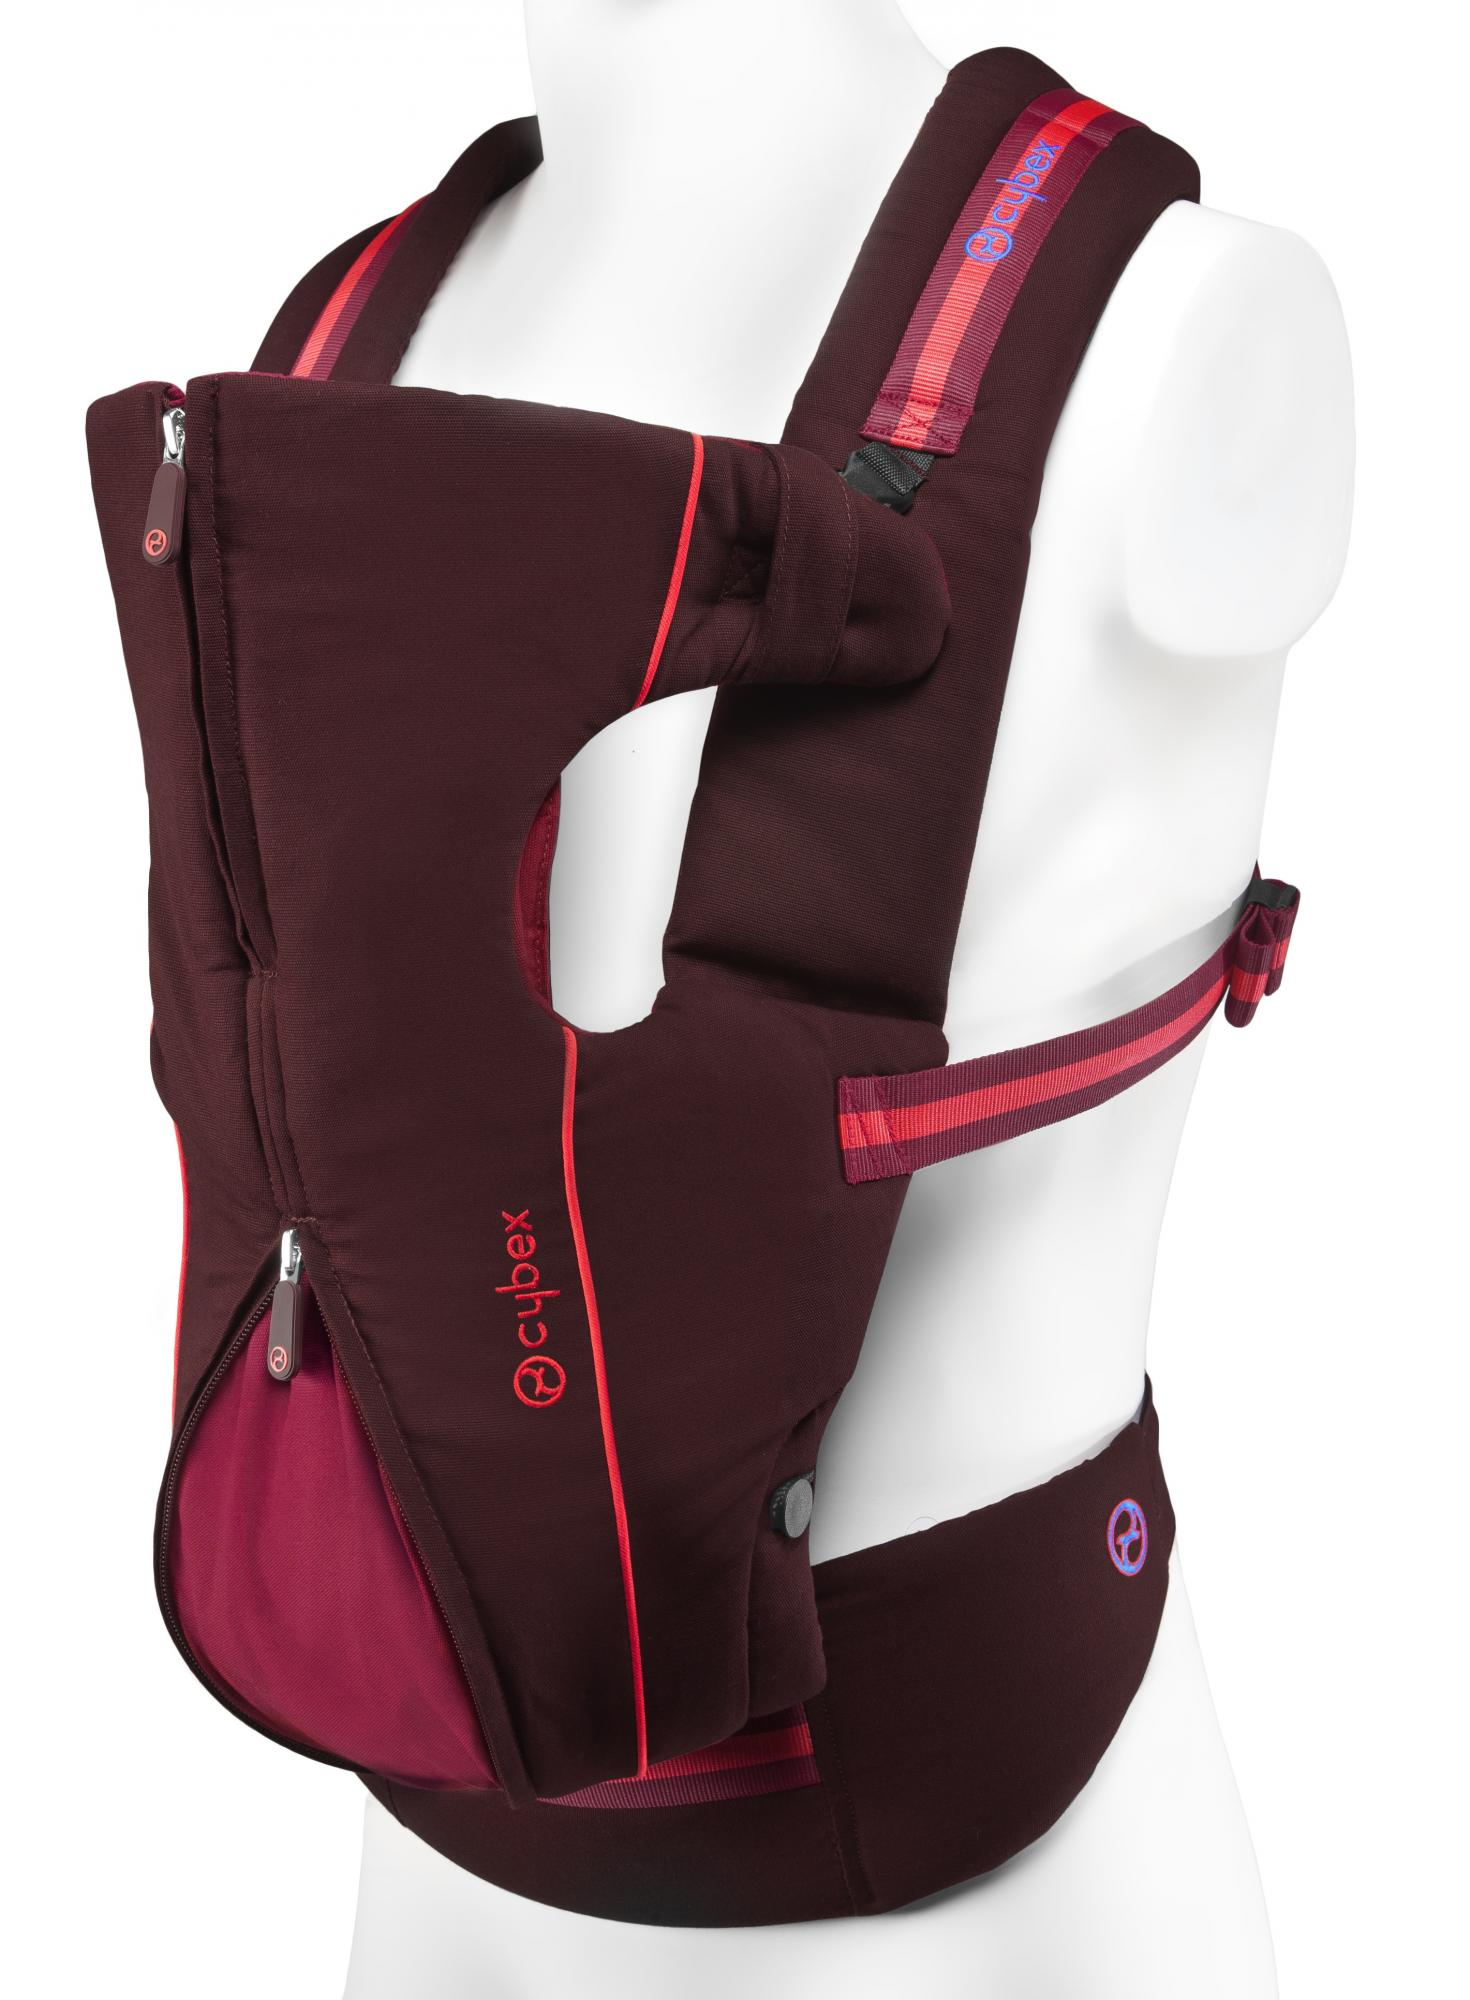 Cybex 2 Go Baby Carrier